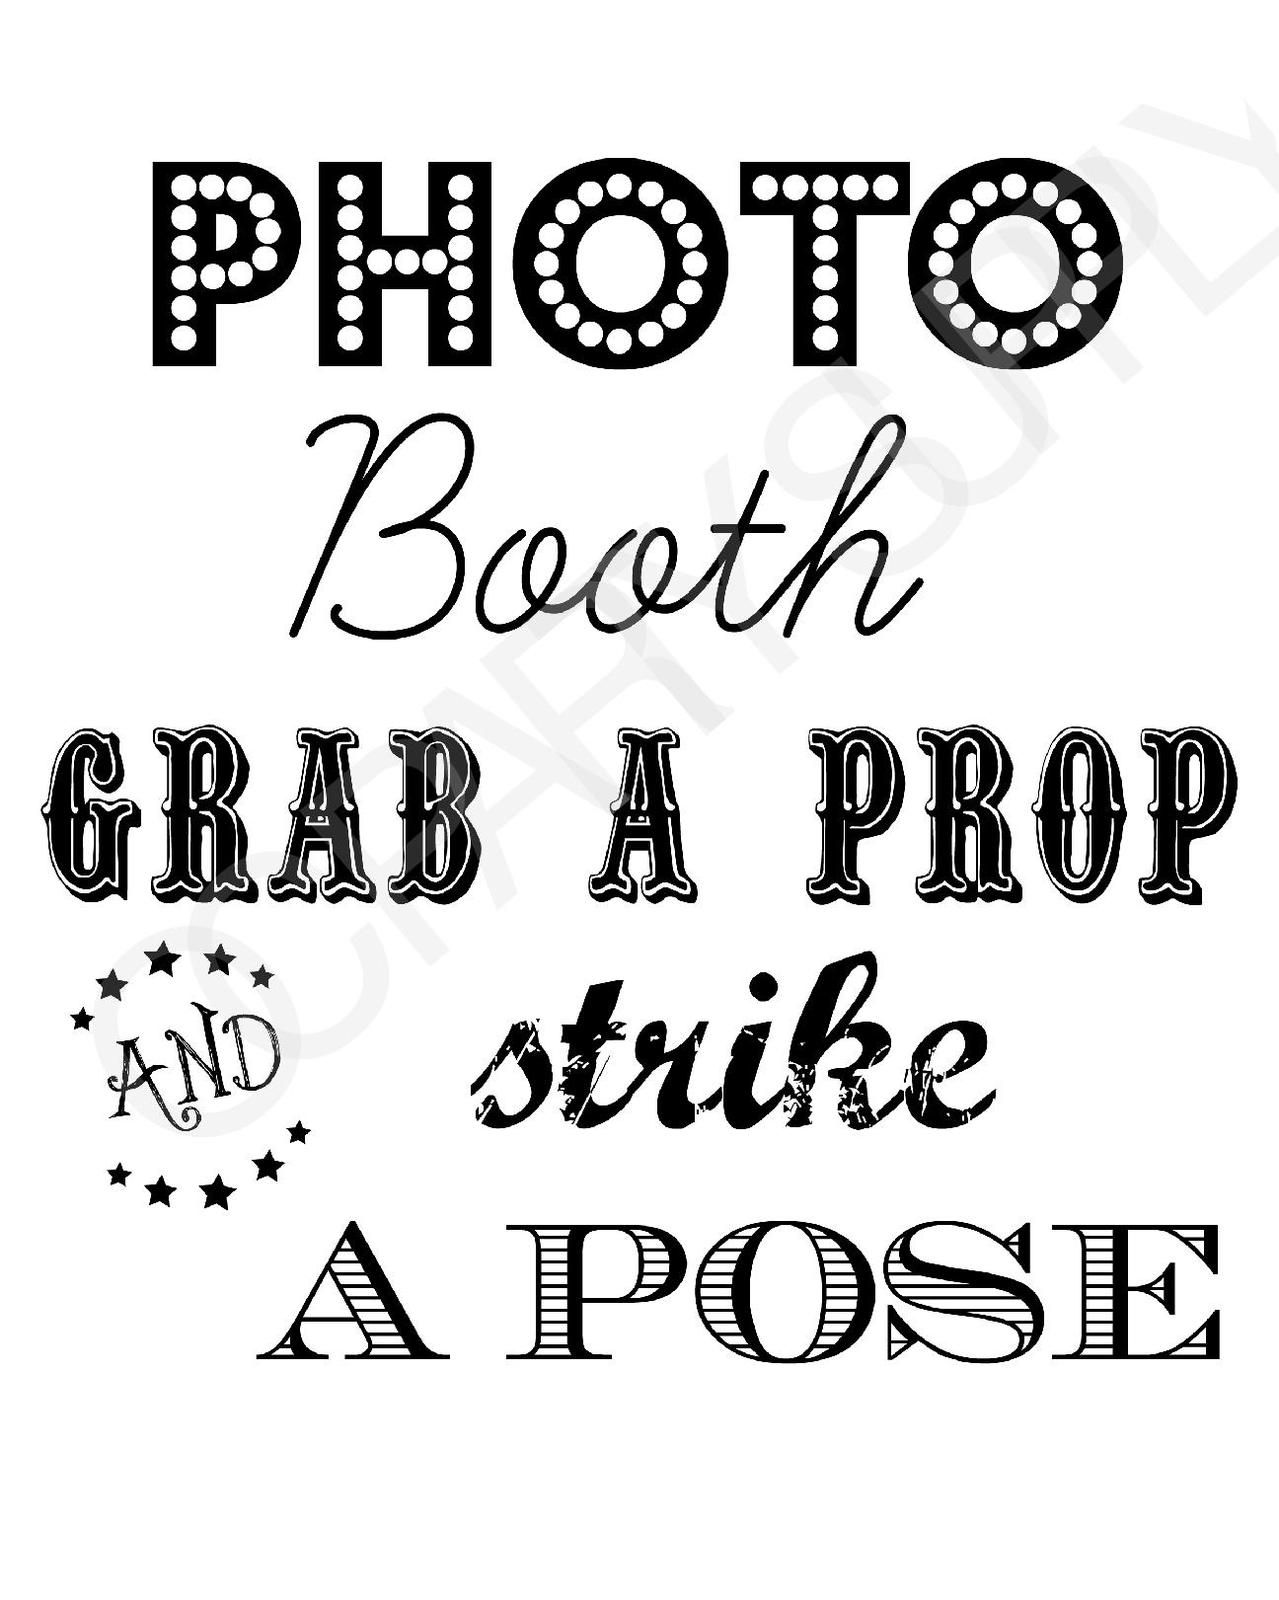 Free Photo Booth Sign Printable Photo Booth Printables Photo Booth Props Free Photo Booth Props Free Printables